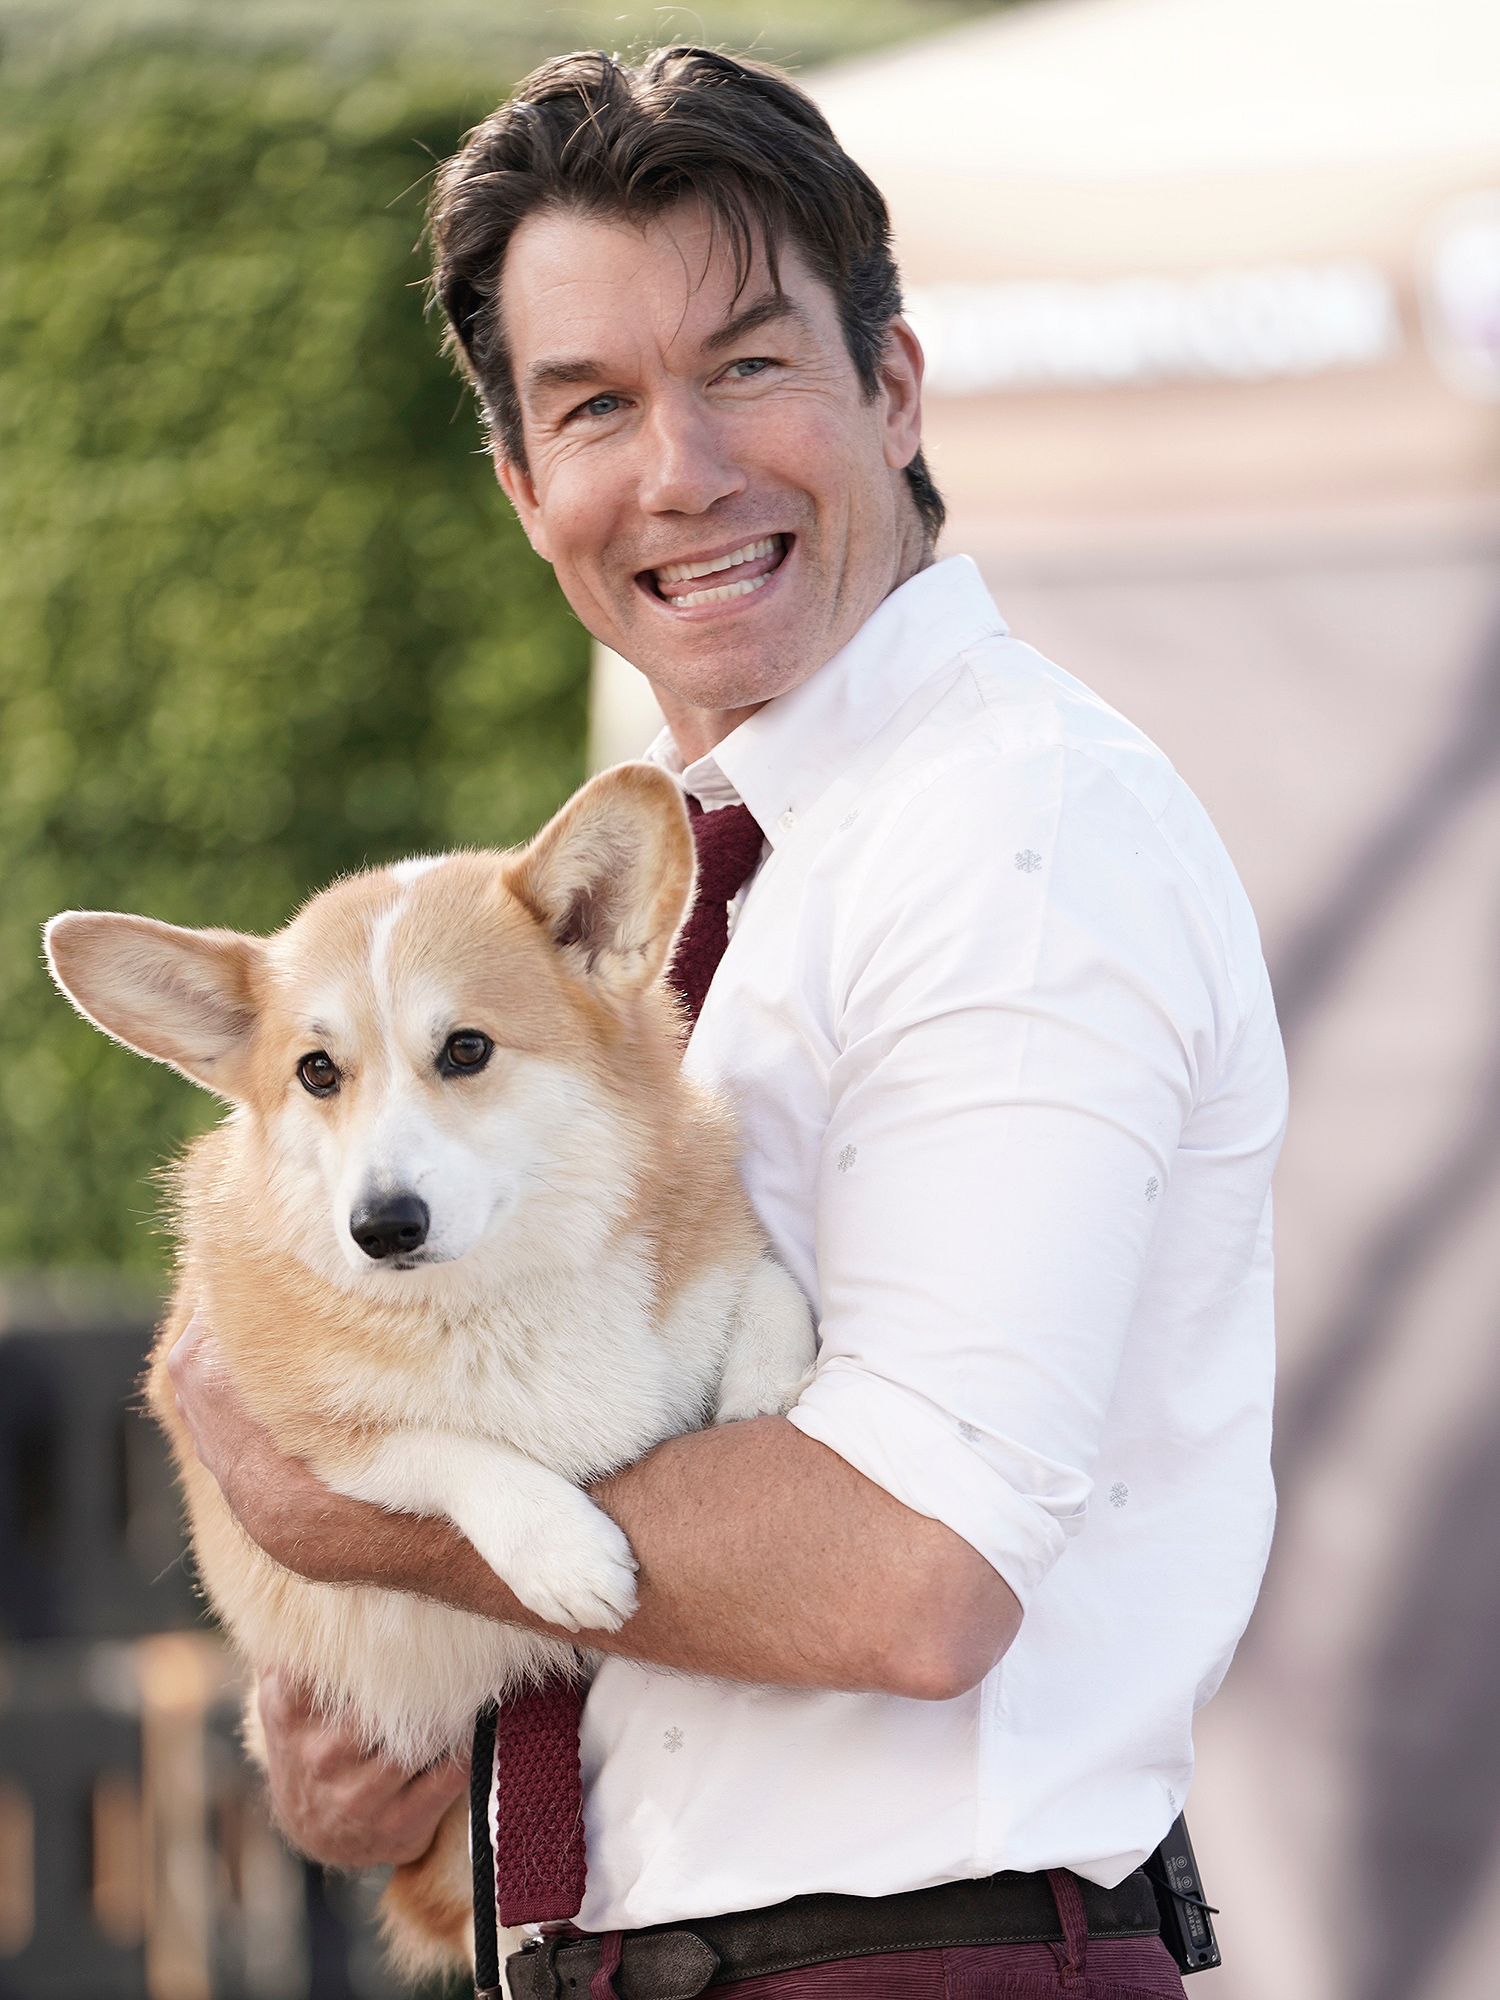 Actor Jerry O'Connell is seen holding a Corgi dog while on the set of EXTRA TV in Los Angeles.